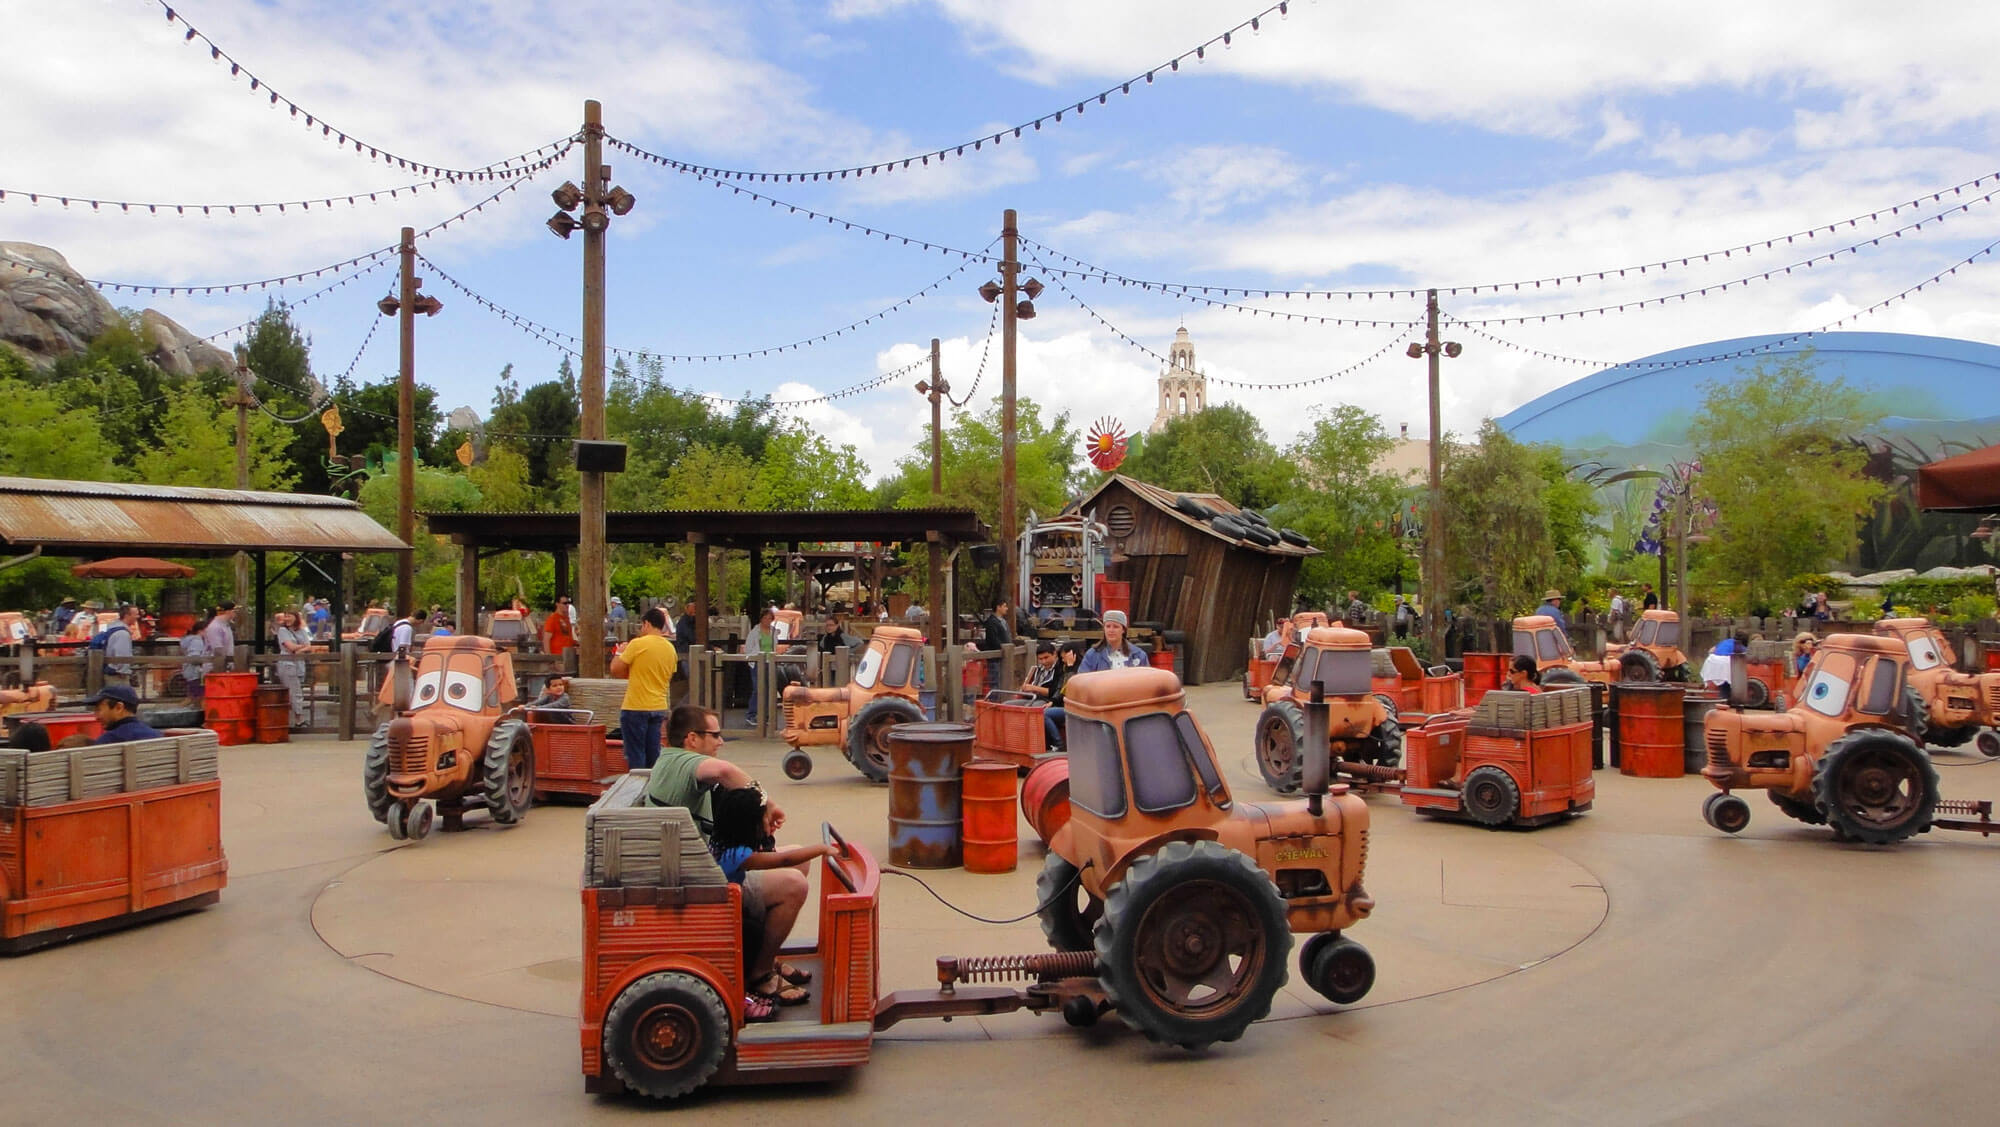 not to miss Disney California Adventure Rides and Attractions - Mater's Junkyard Jamboree